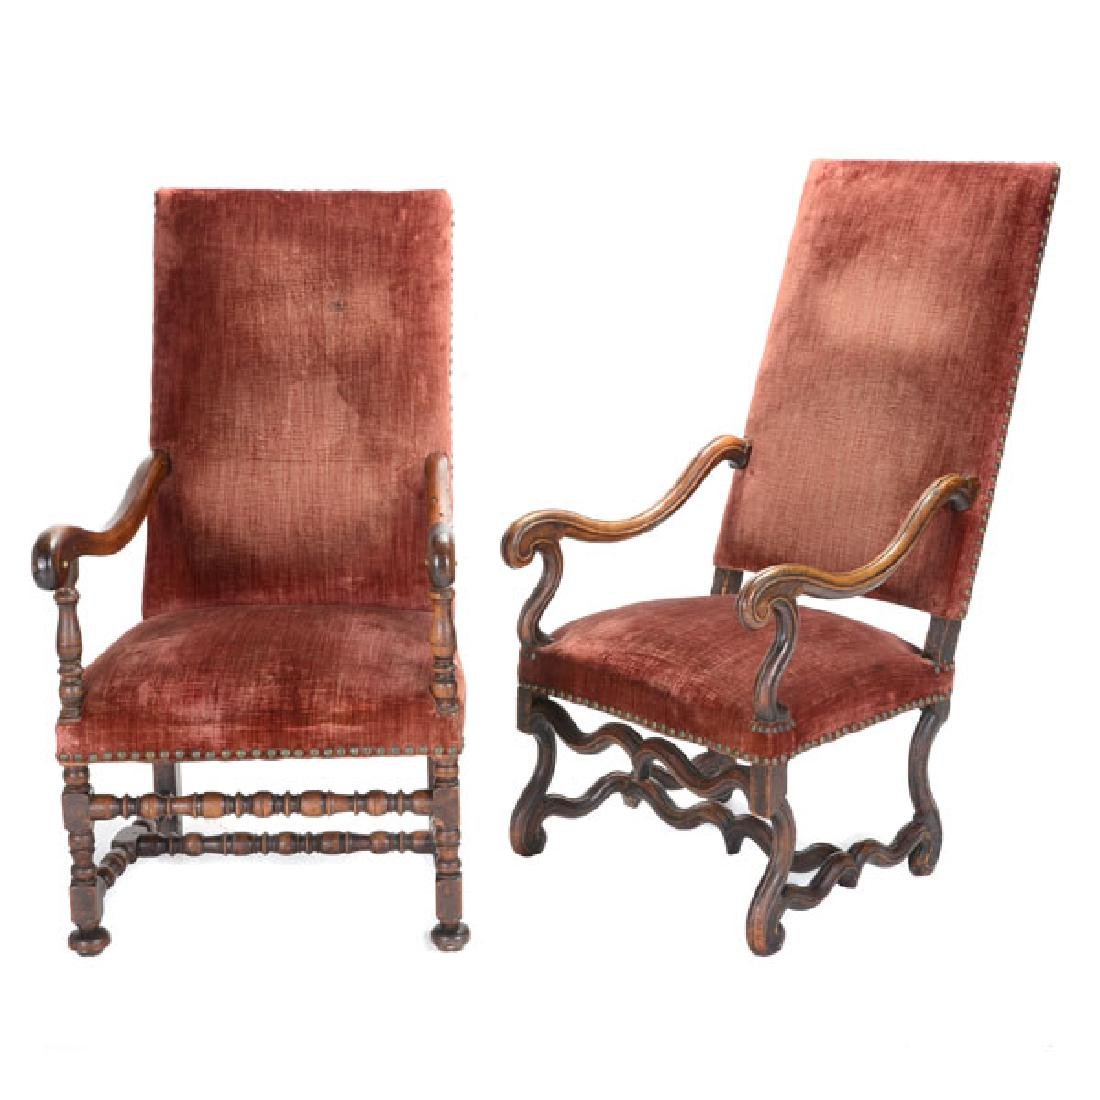 Pair of Baroque Armchairs with Red Velvet Upholstery